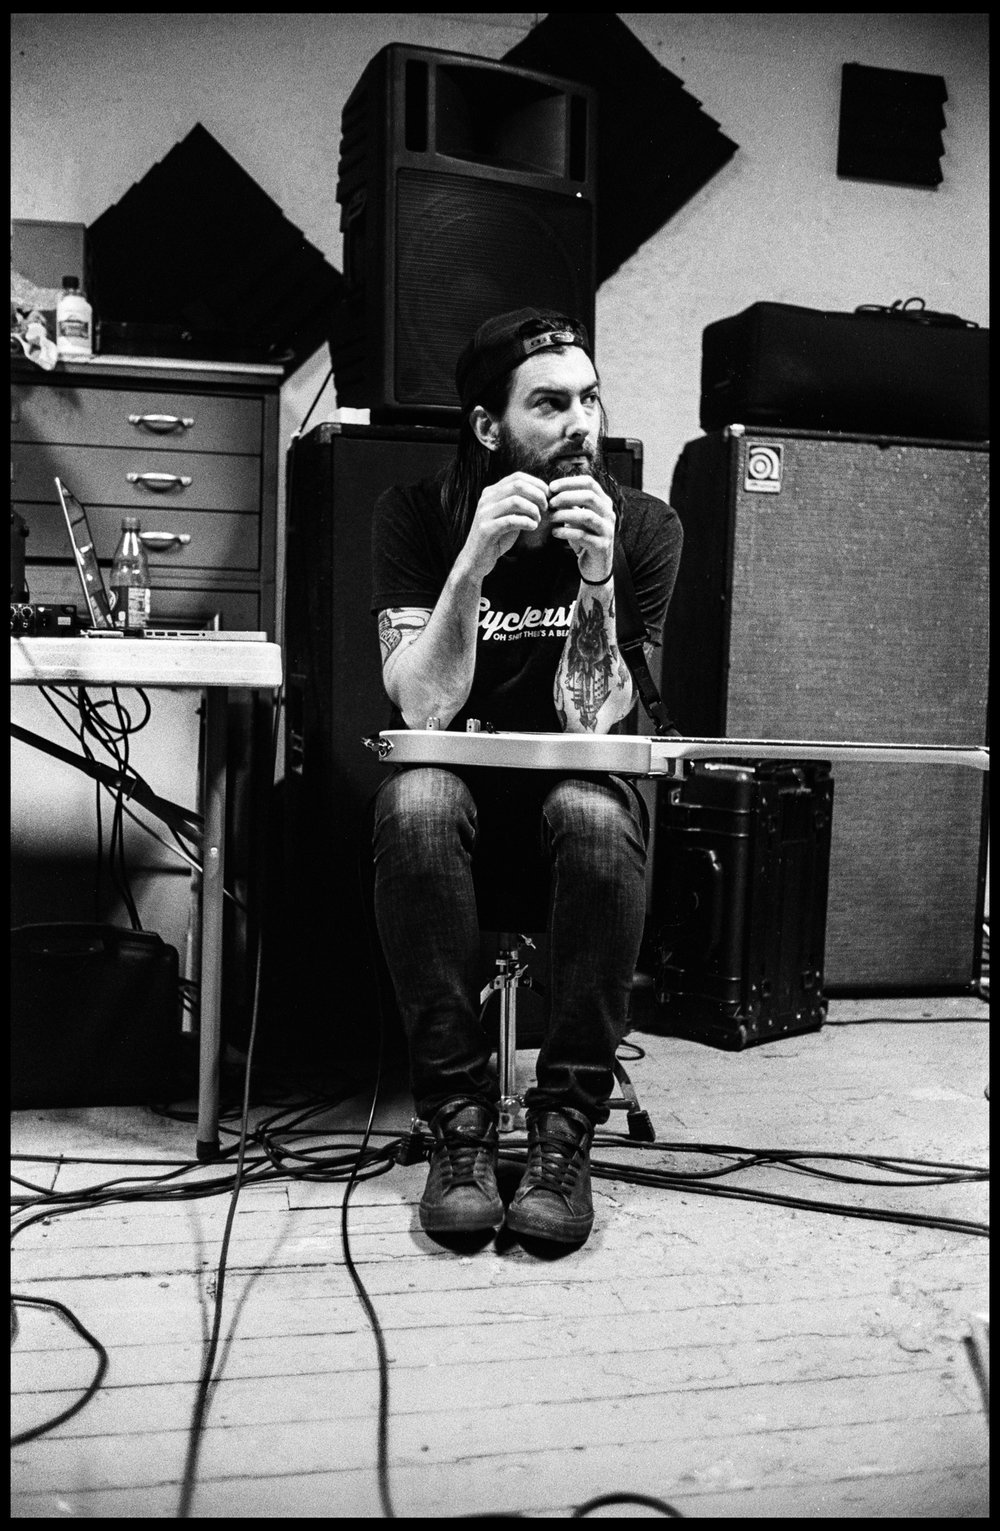 nick dinatale_defeater 2017_epitaph records_writing session_35mm film leica-11.jpg